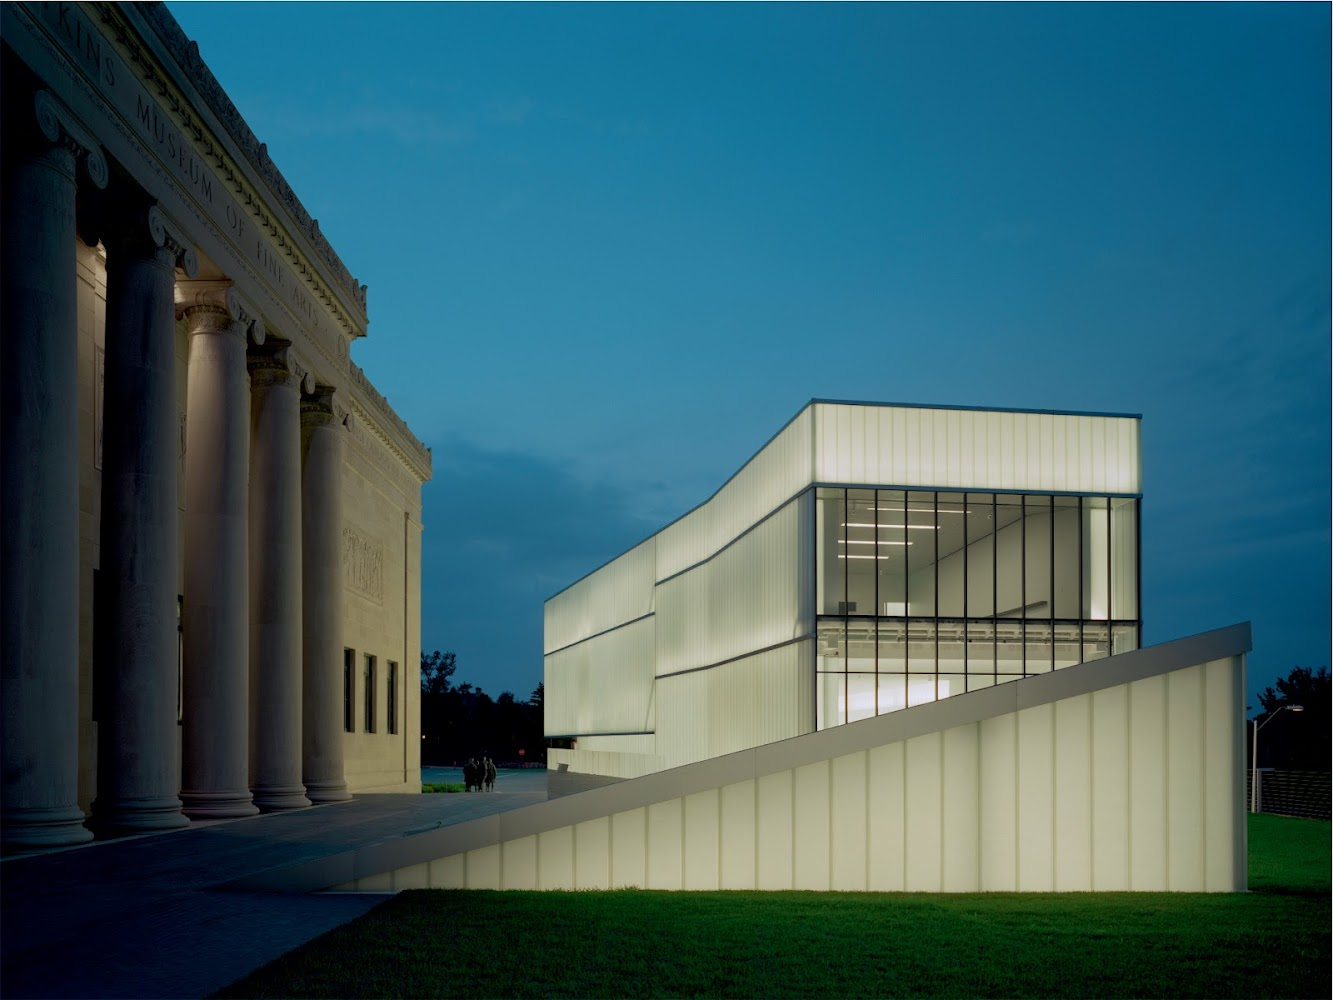 On 12th at Oak Eastbound, Kansas City, Missouri 64106, Stati Uniti: Nelson Atkins Museum of Art by Steven Holl Architects